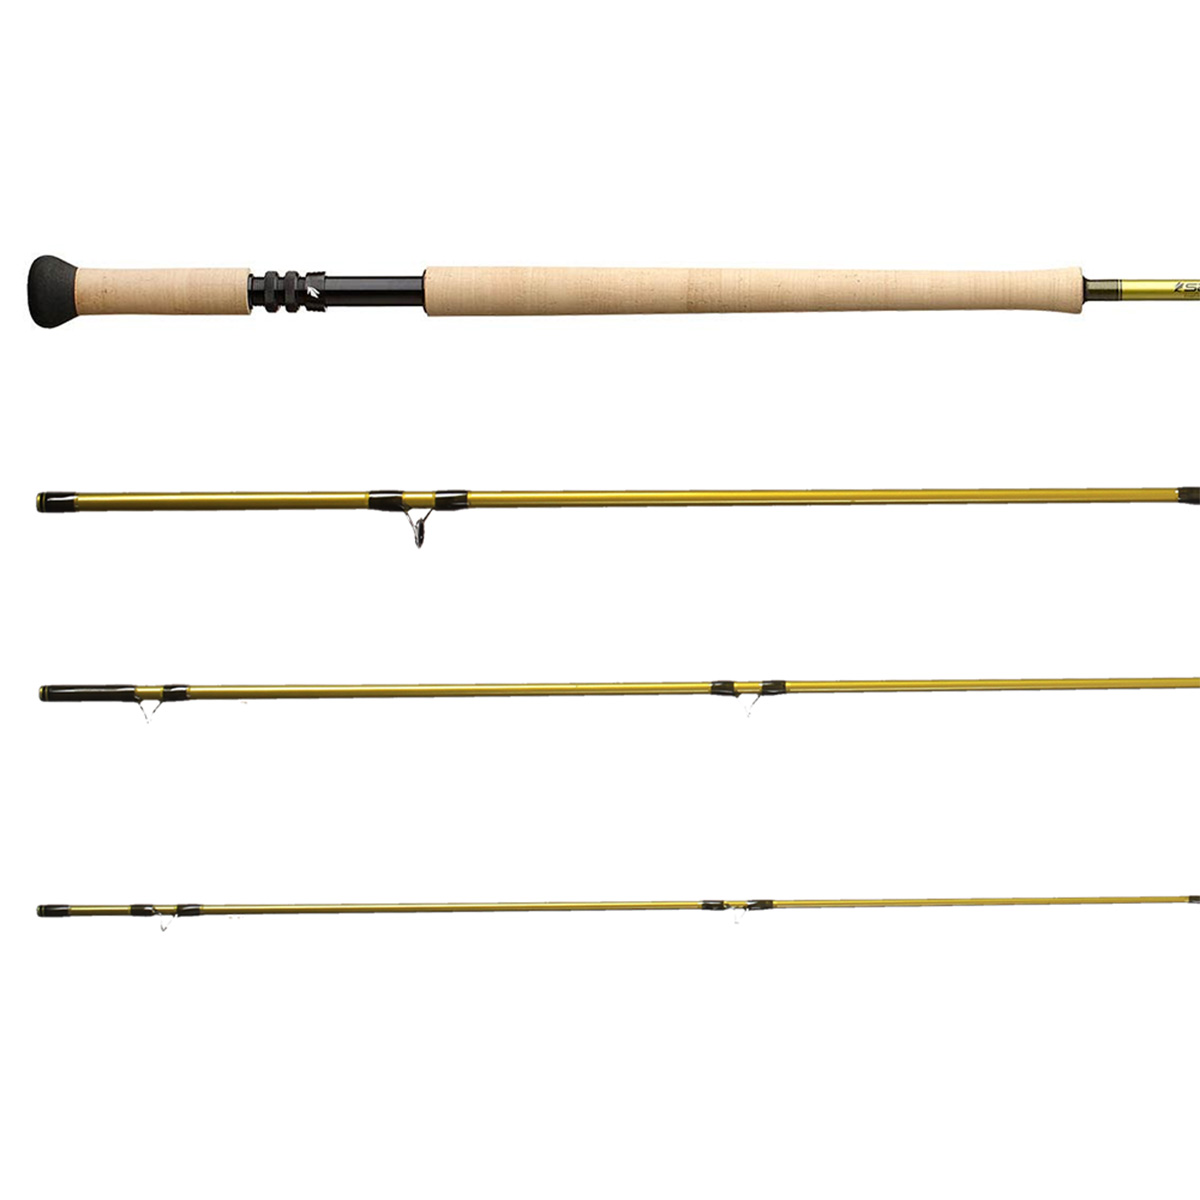 Sage pulse switch fly fishing rods ebay for Ebay fishing poles